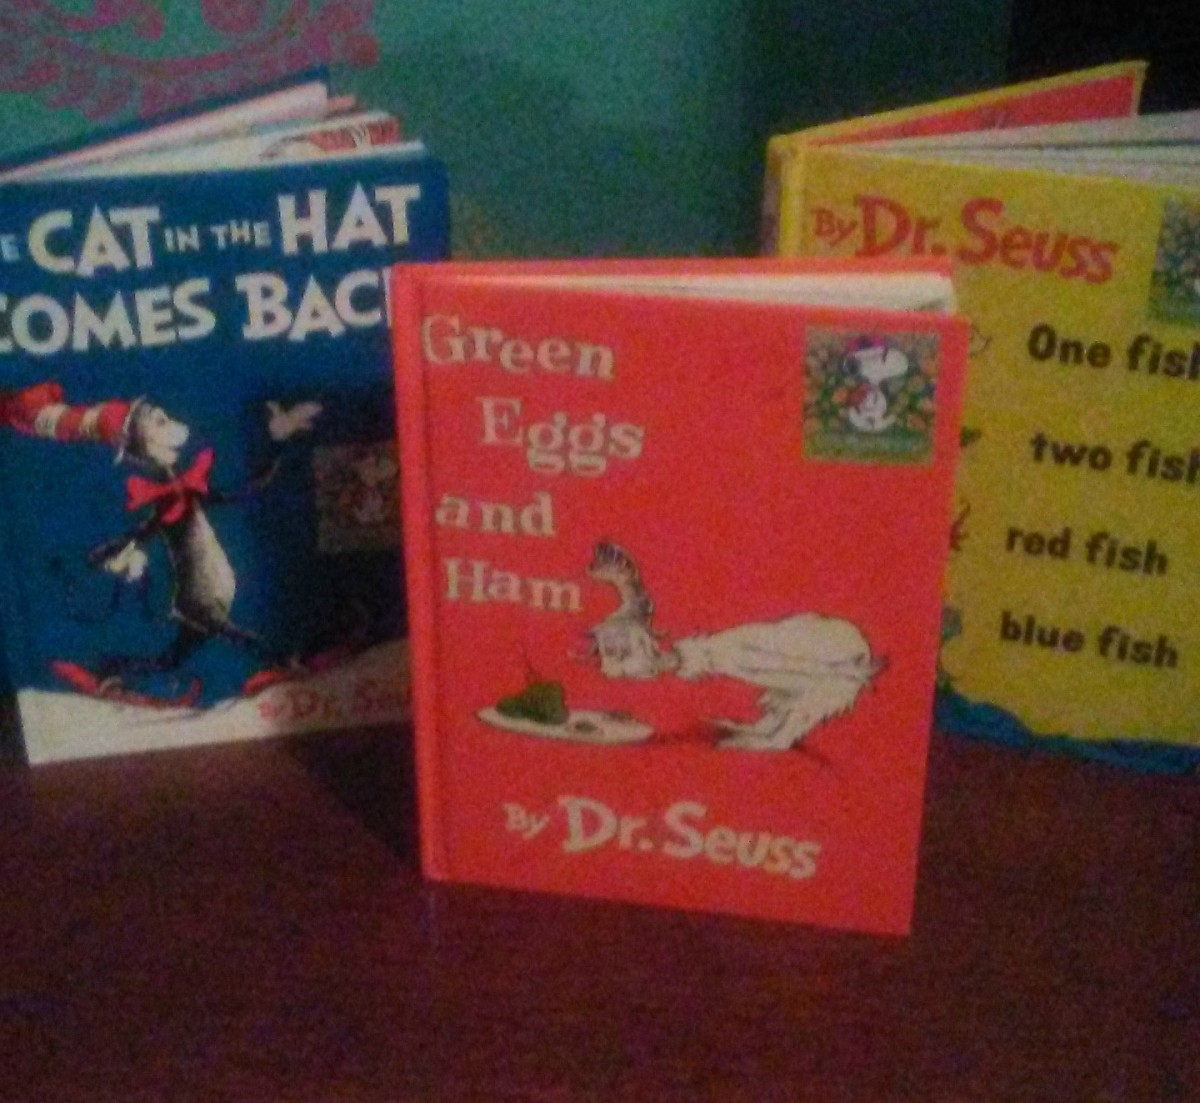 Reading Dr. Seuss books is fun for the whole family.